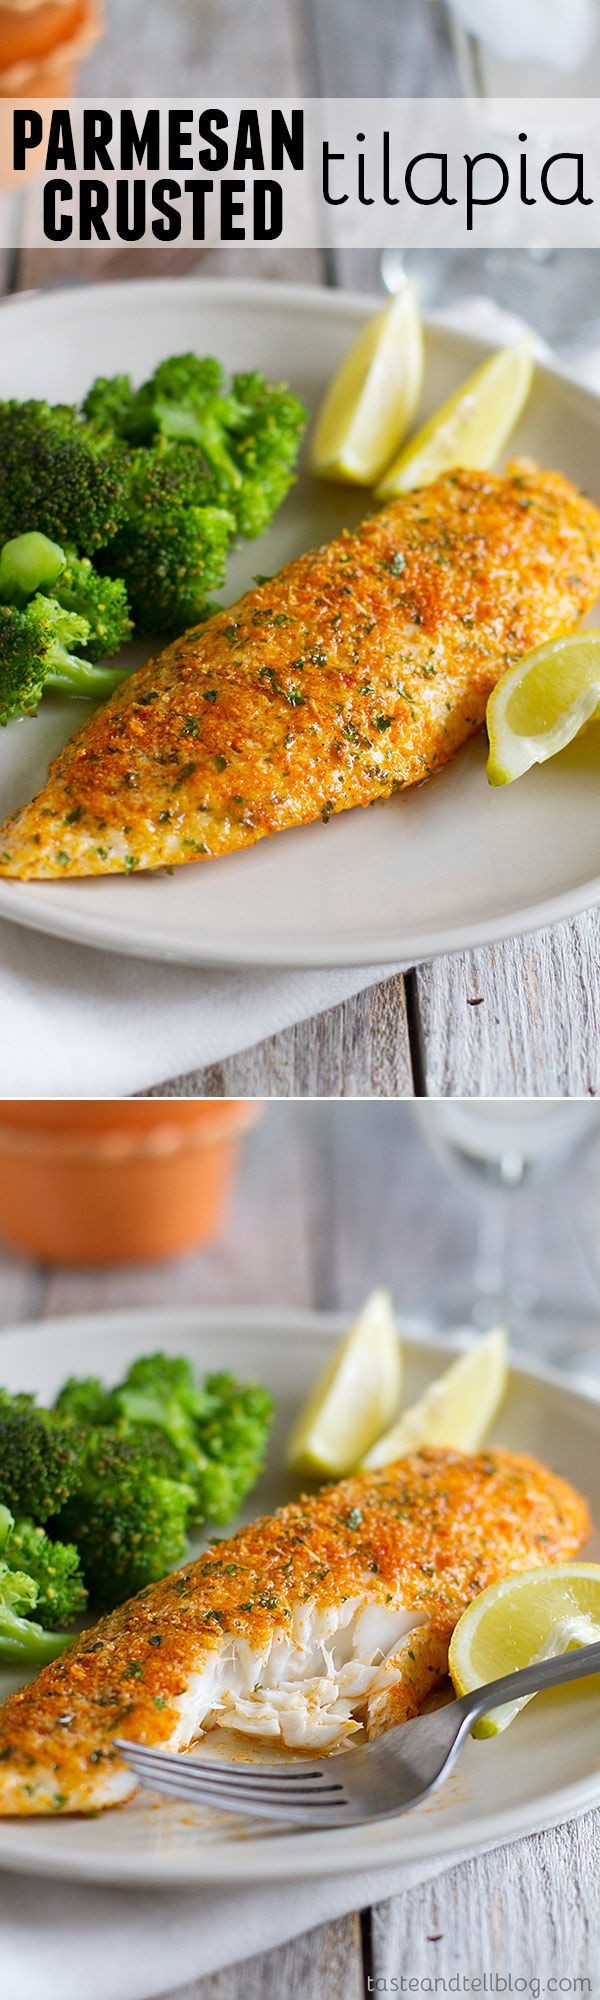 Check out this recipe for Parmesan crusted tilapia. Yummy! #RecipeIdeas @recipes_to_go